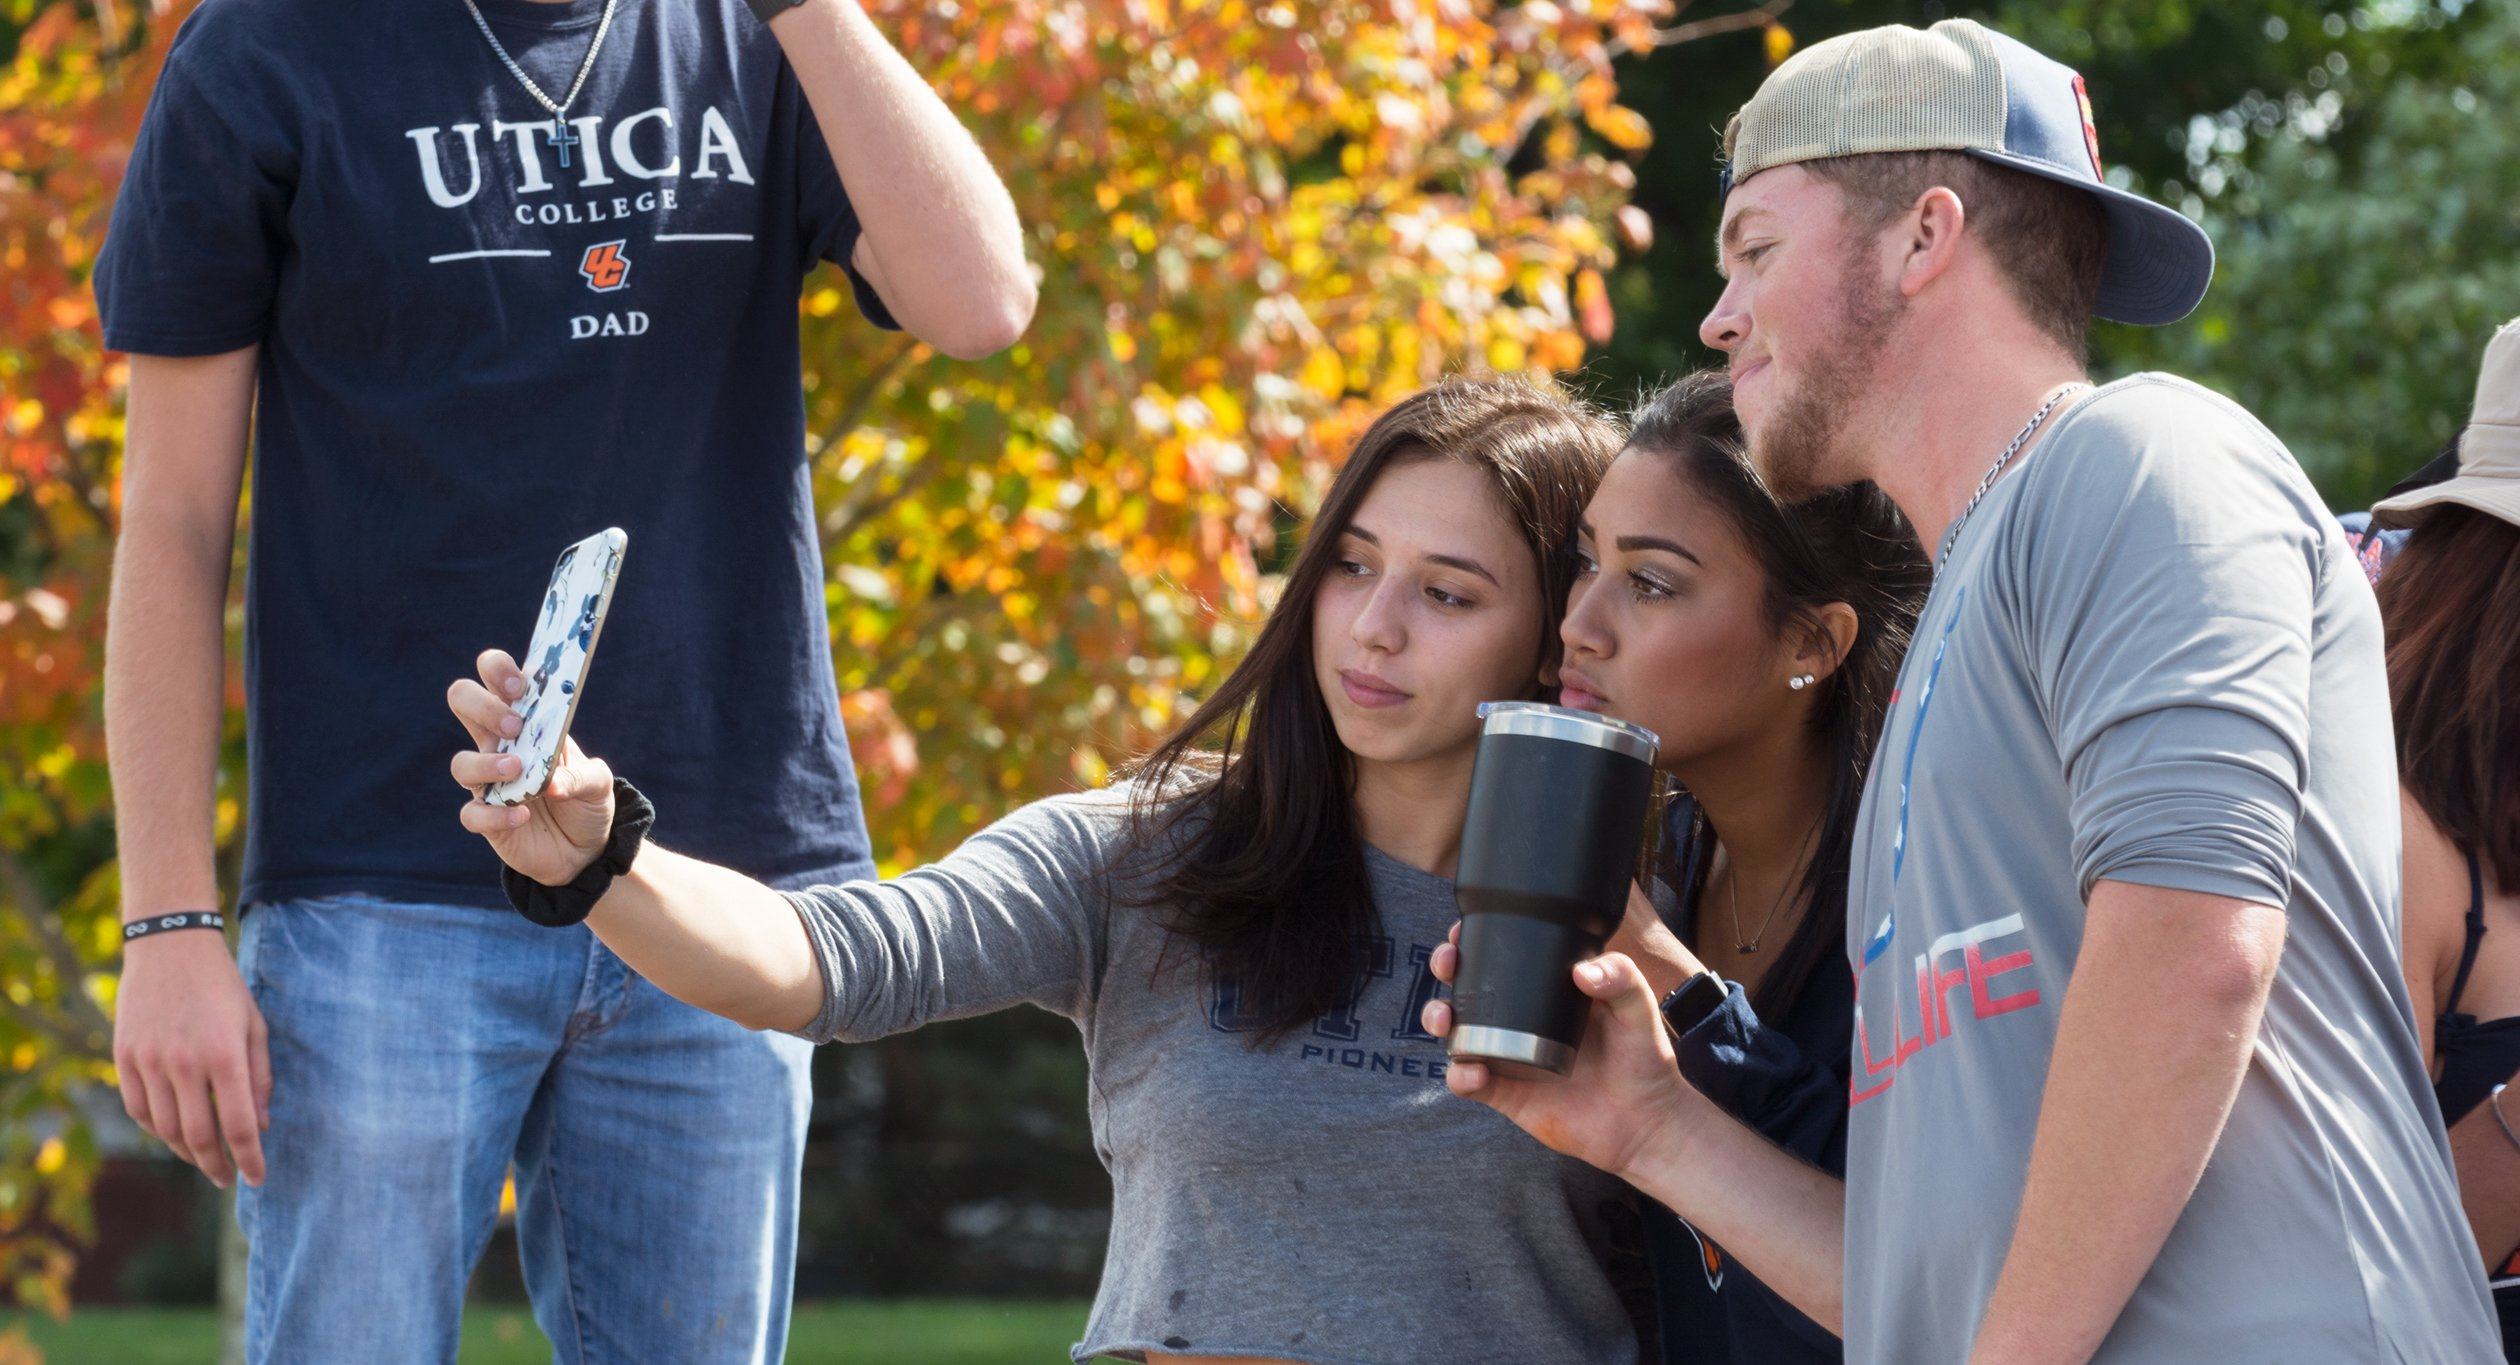 Homecoming celebration at Utica College